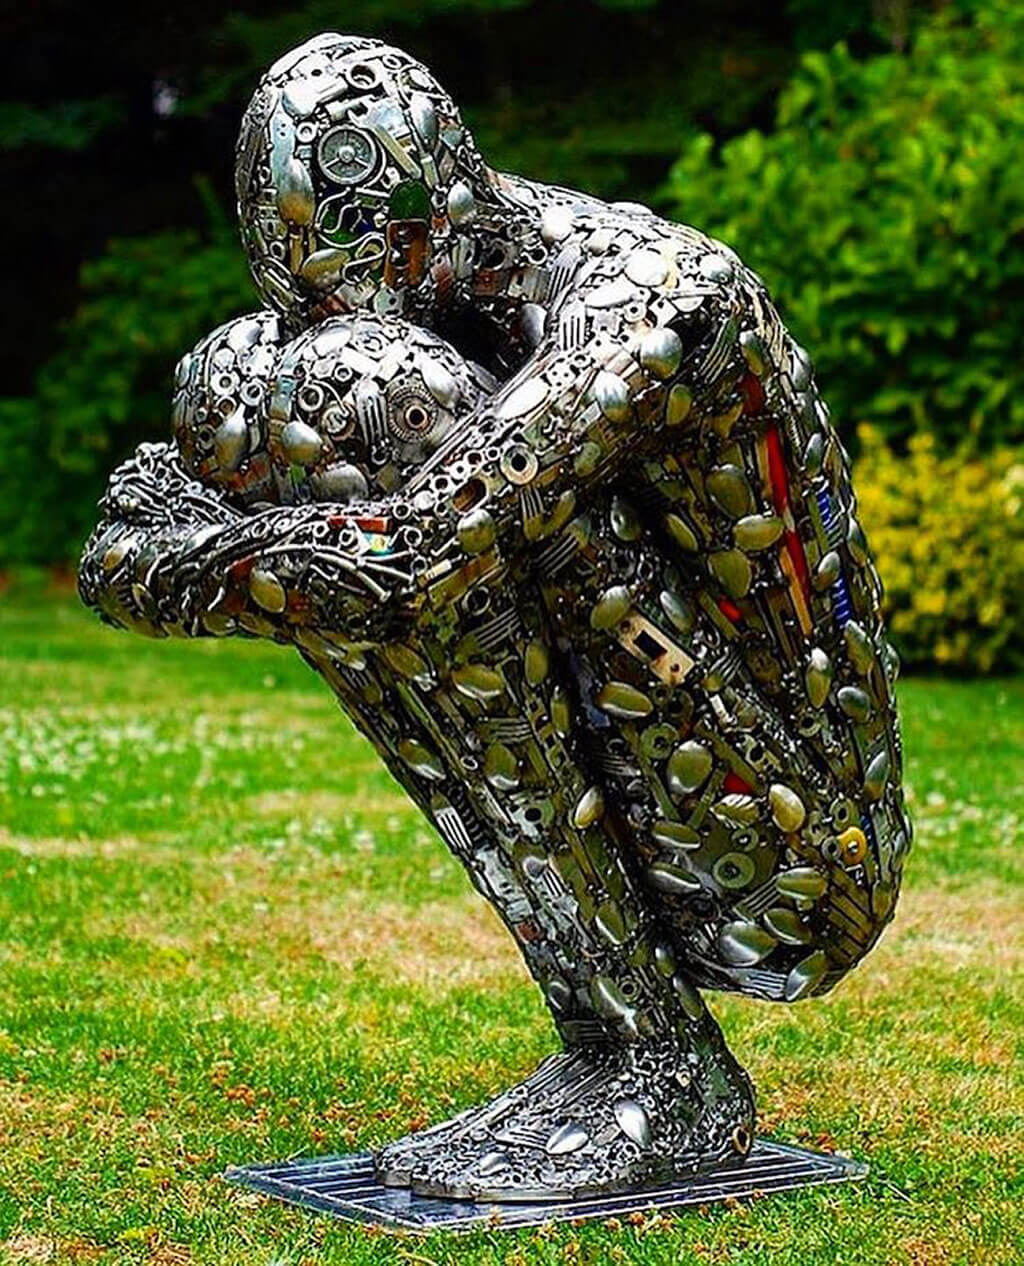 Human form made from scrap metal